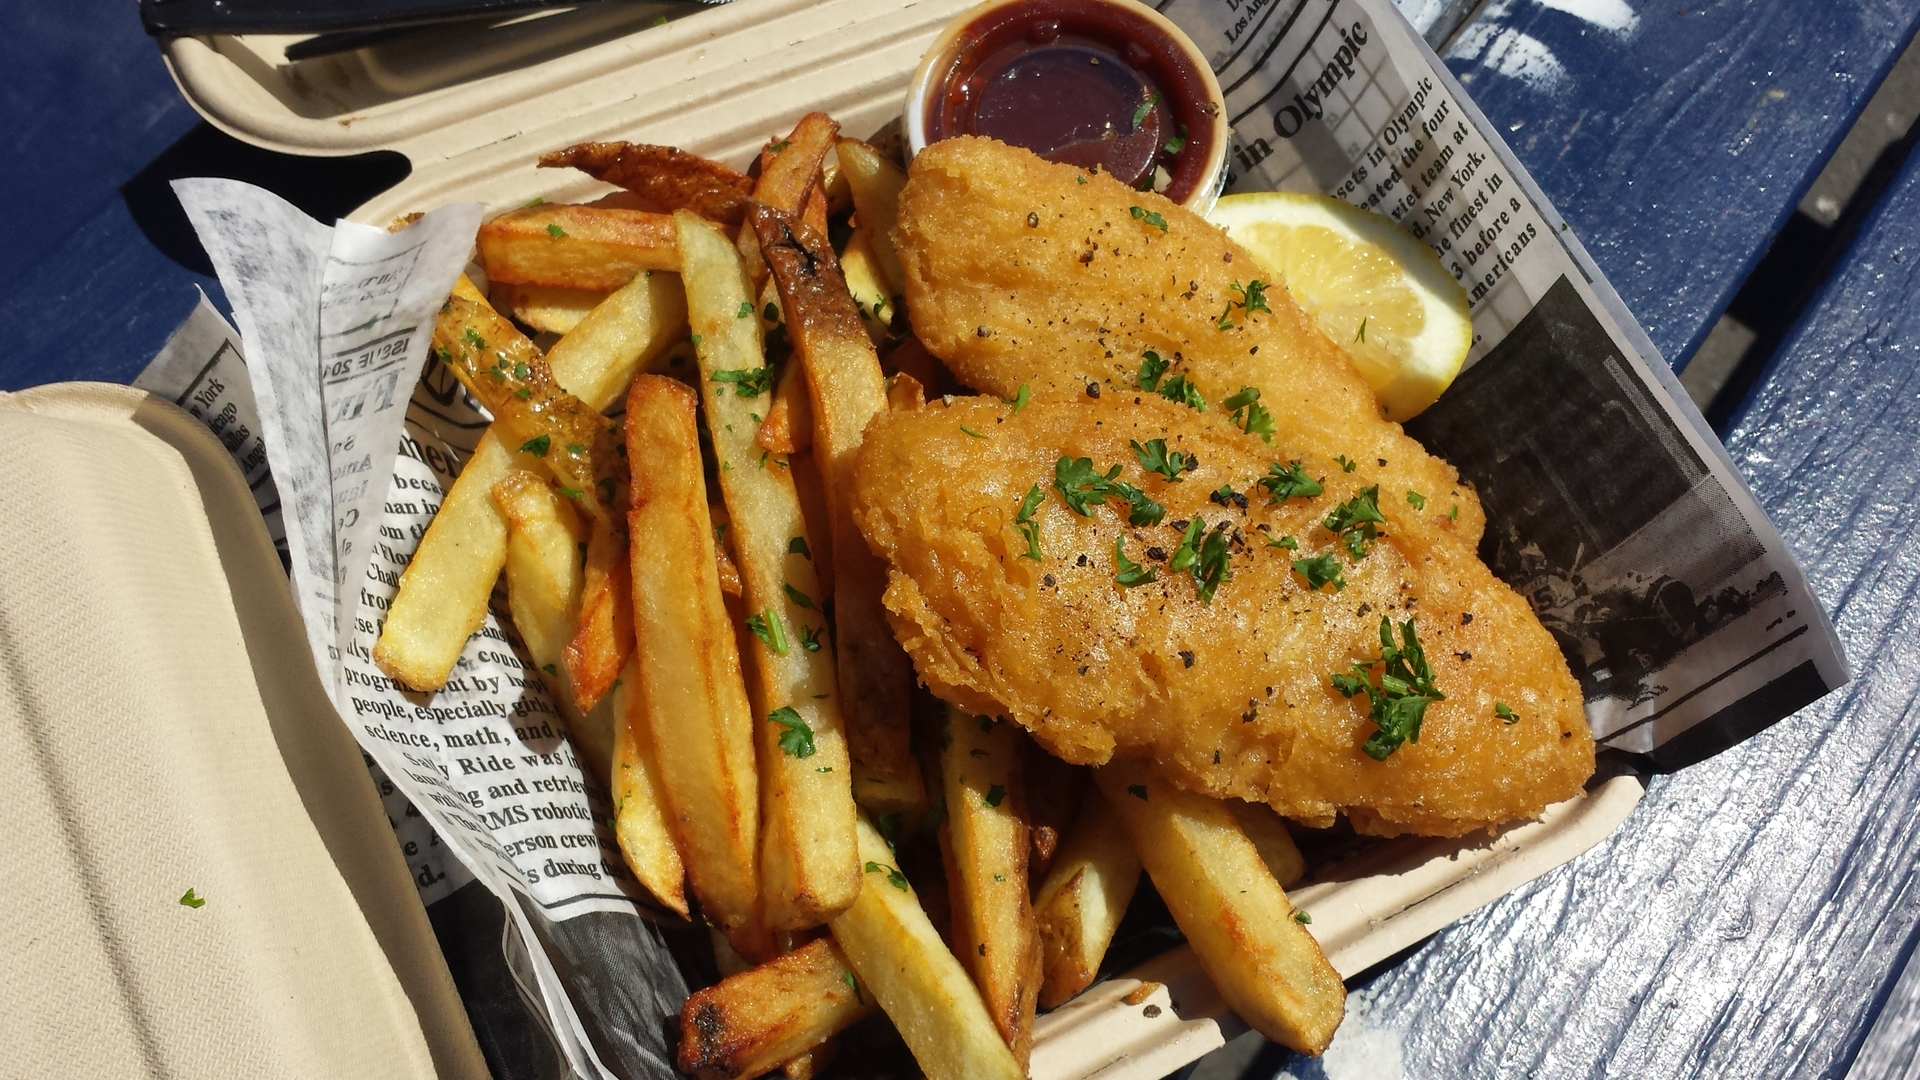 fresh fish and chips dinner